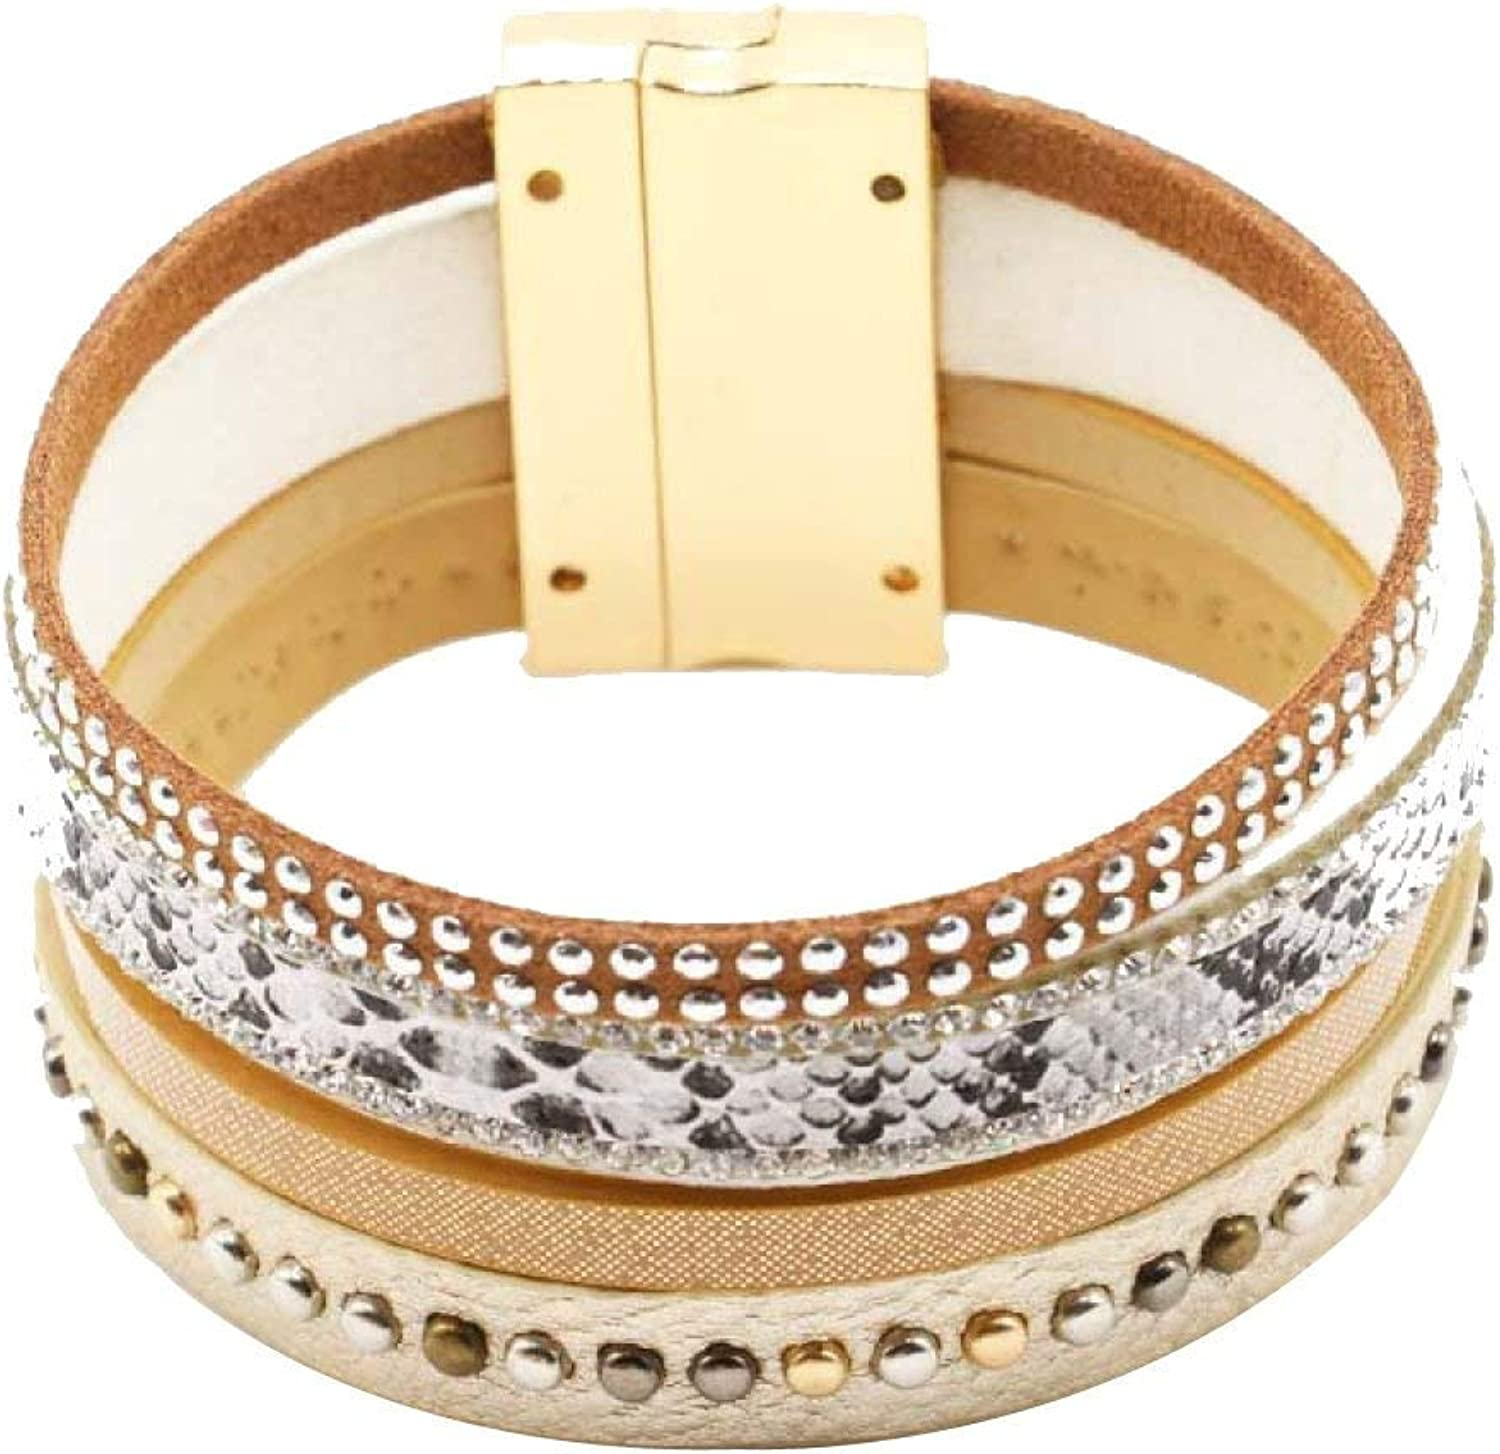 Zicue Stylish Charming Bracelet Exquisite Ornaments Popular Multilayer Personality Wide Side Magnetic Buckle Bracelet Leather Diamond Bohemian Leopard Brazil Bracelet Fashion